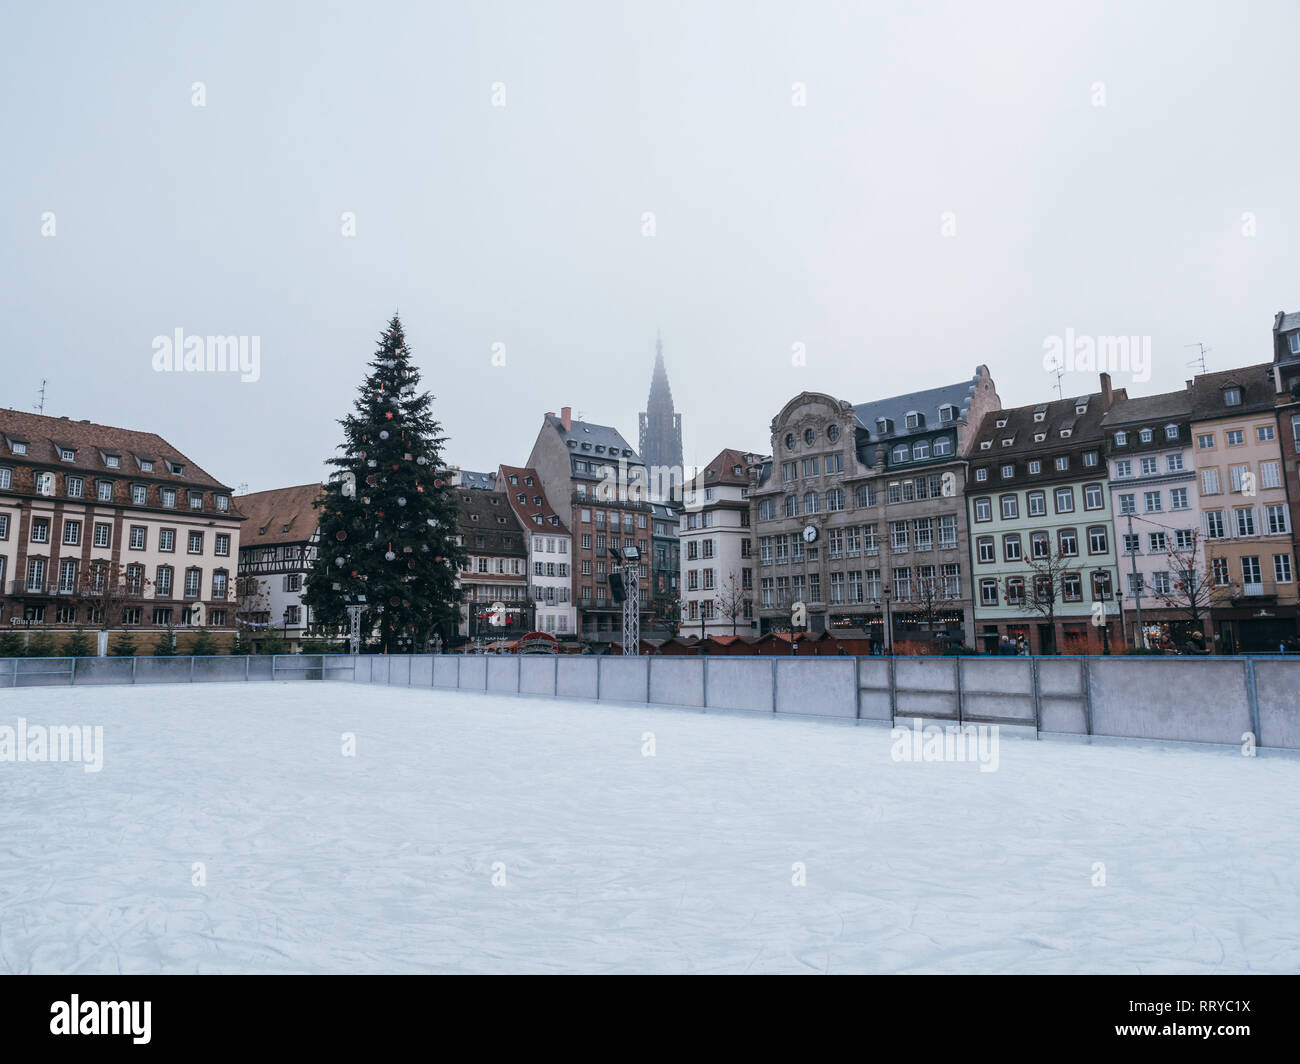 STRASBOURG, FRANCE - DEC 11, 2018: Empty skating rink with Christmas market stall in Place Kelber after the terrorist attack in the Strasbourg Christmas market area - Stock Image